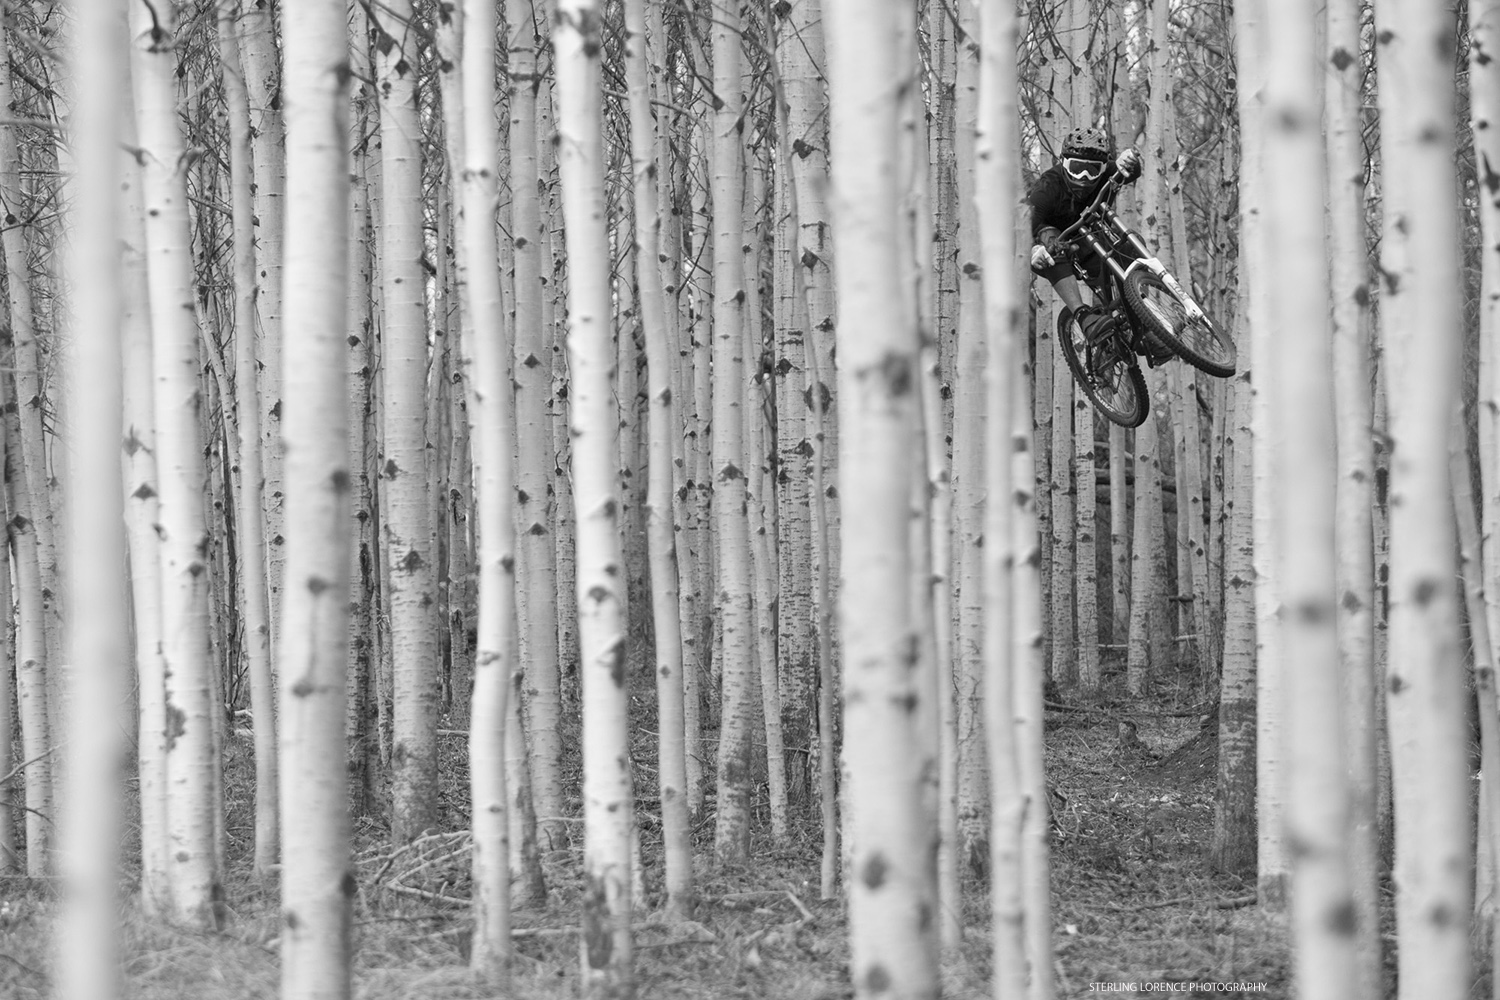 matt hunter jumping through aspen trees in kamloops, british columbia